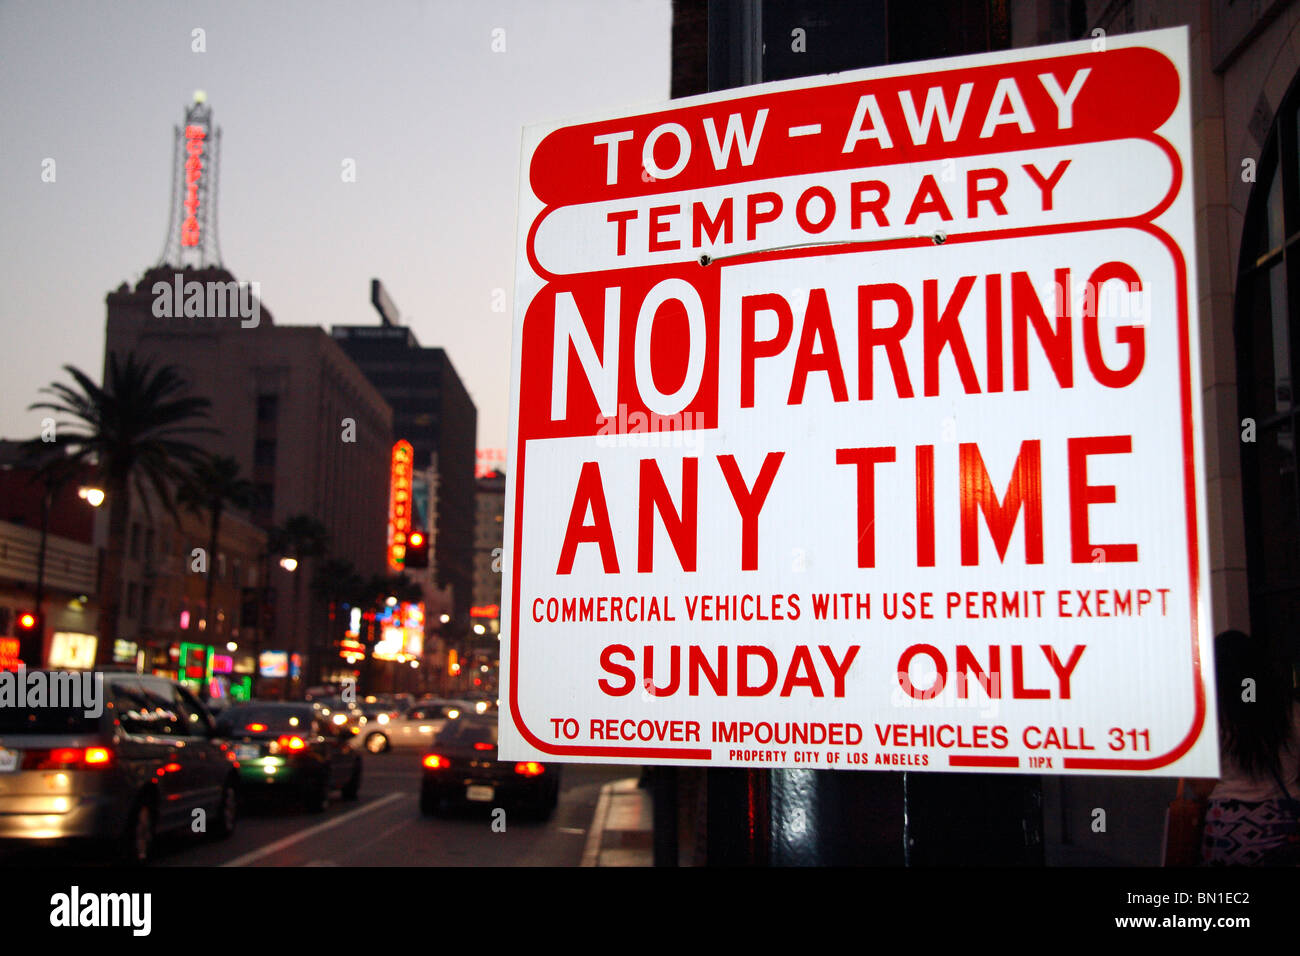 No Parking Sign Tow Away - Stock Image